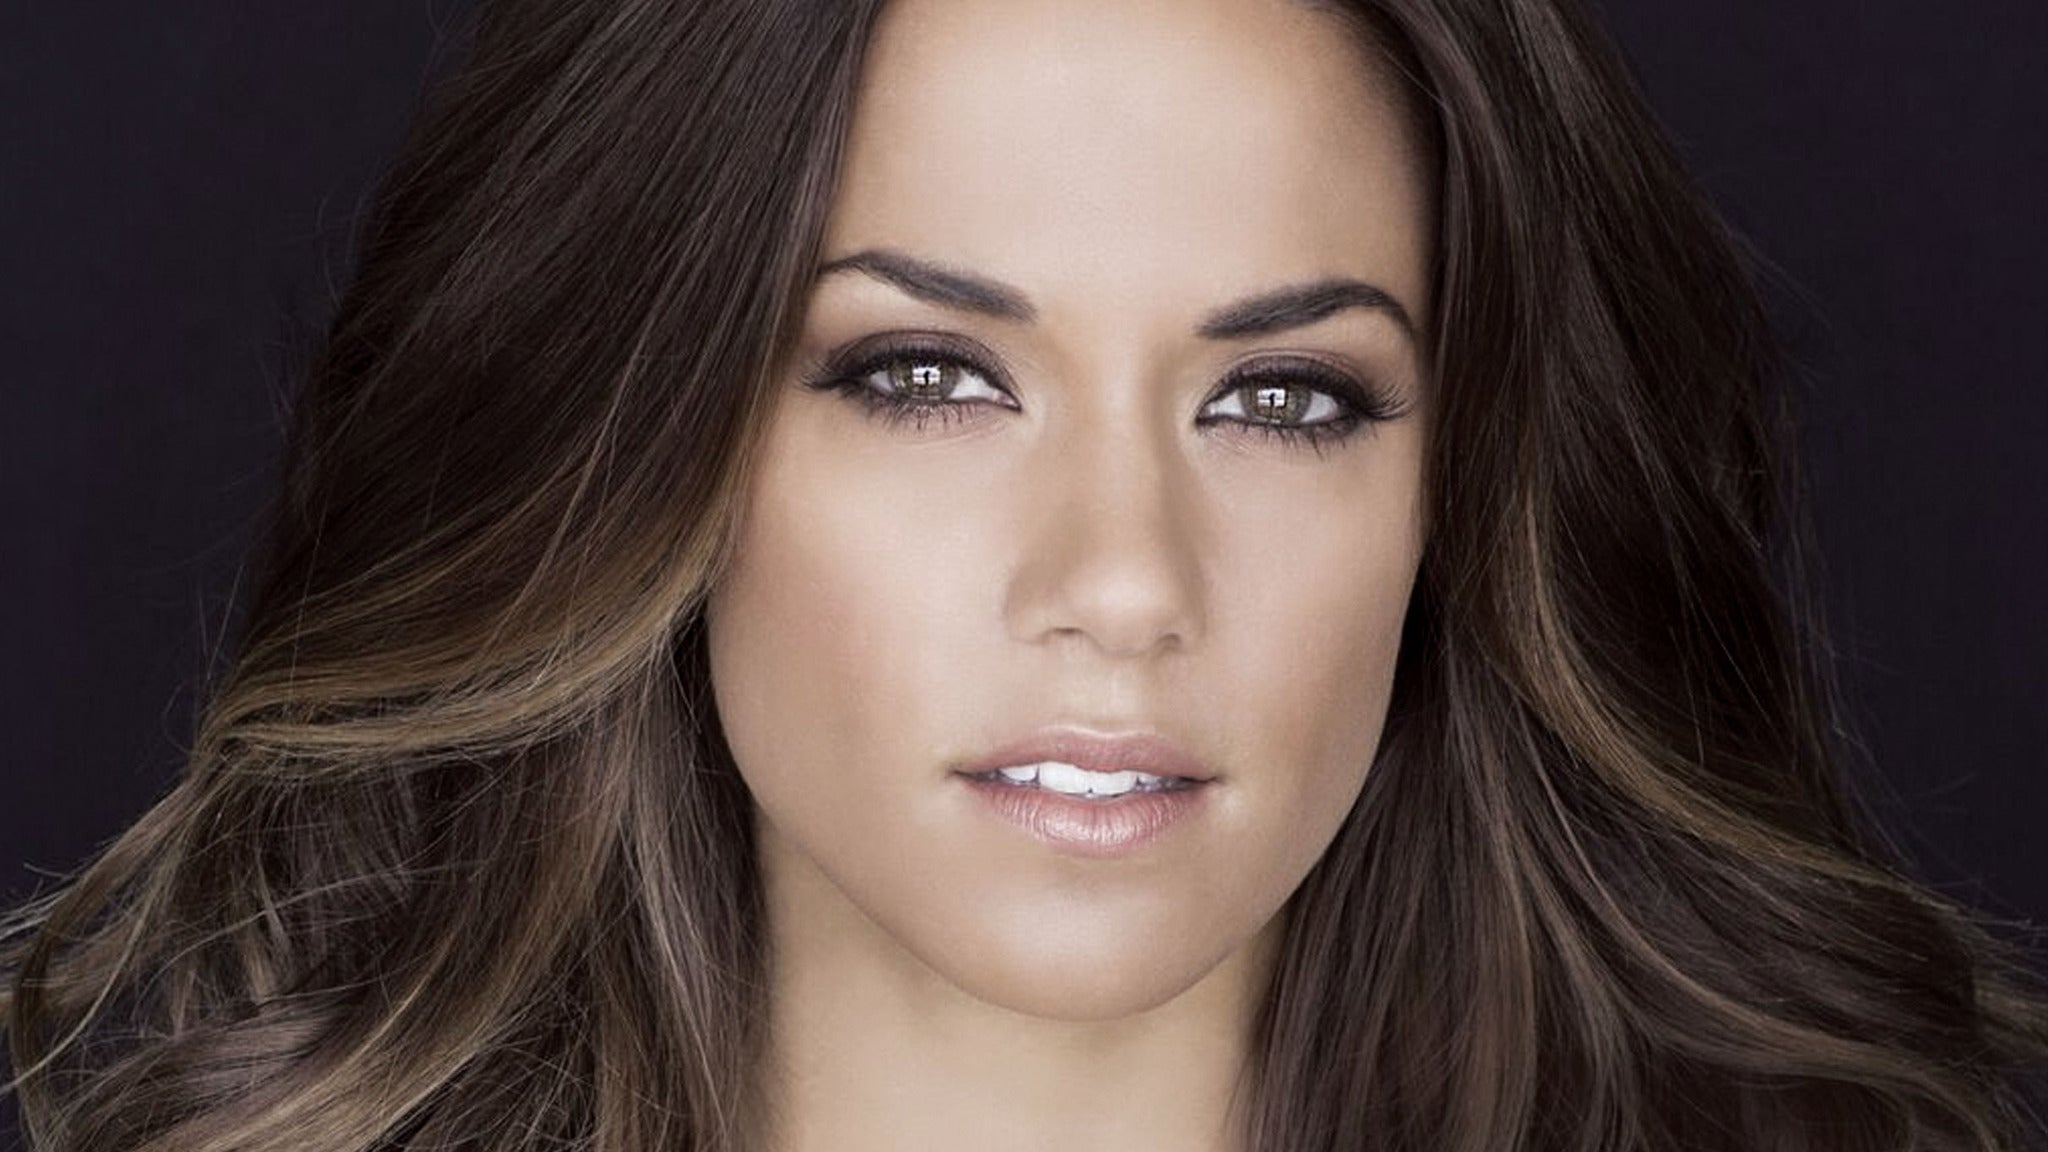 Jana Kramer at Morongo Casino Resort and Spa